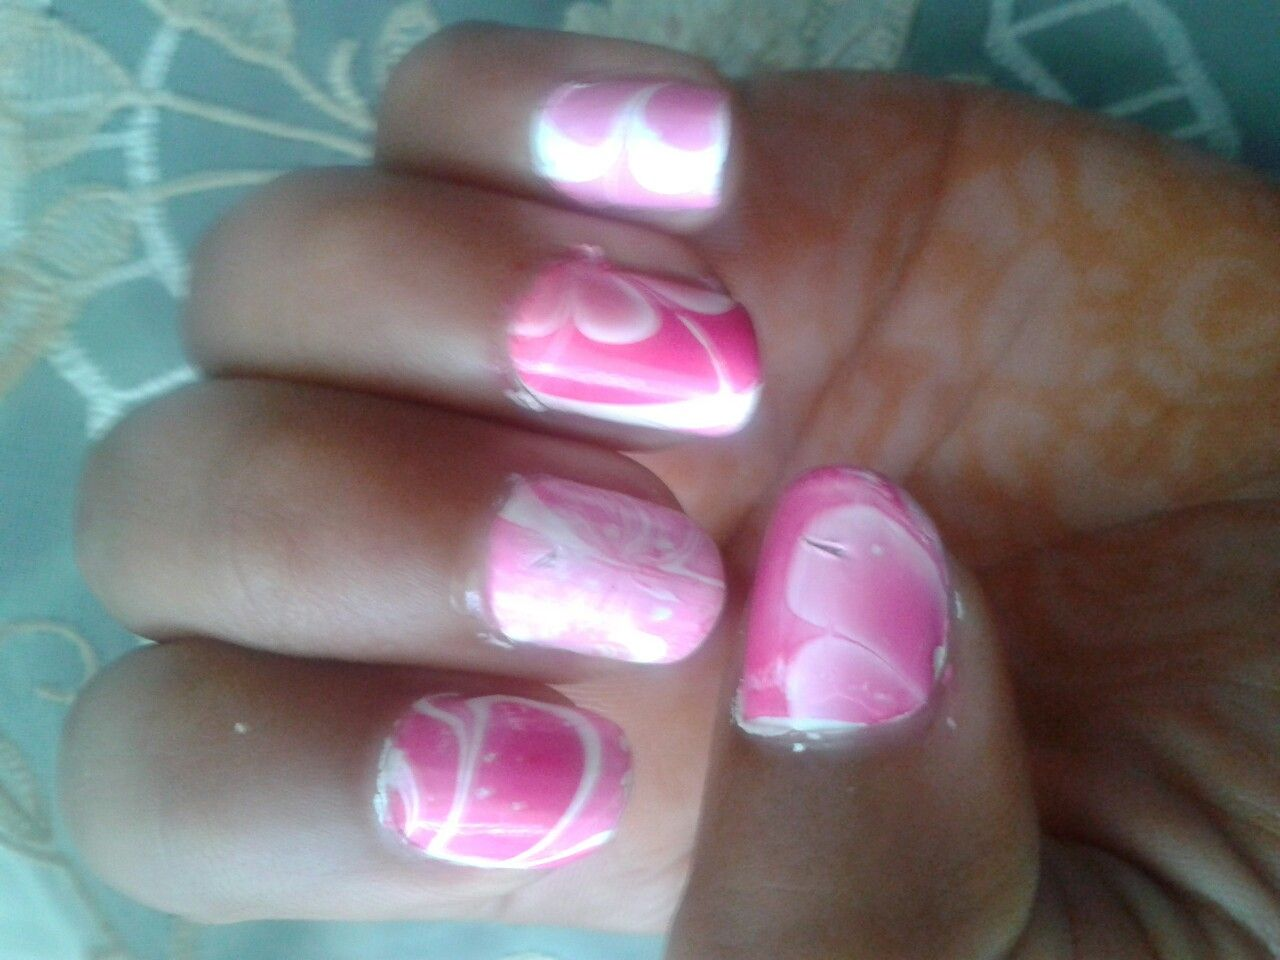 Water marble nails that i did by myself nails pinterest water marble nails that i did by myself solutioingenieria Gallery